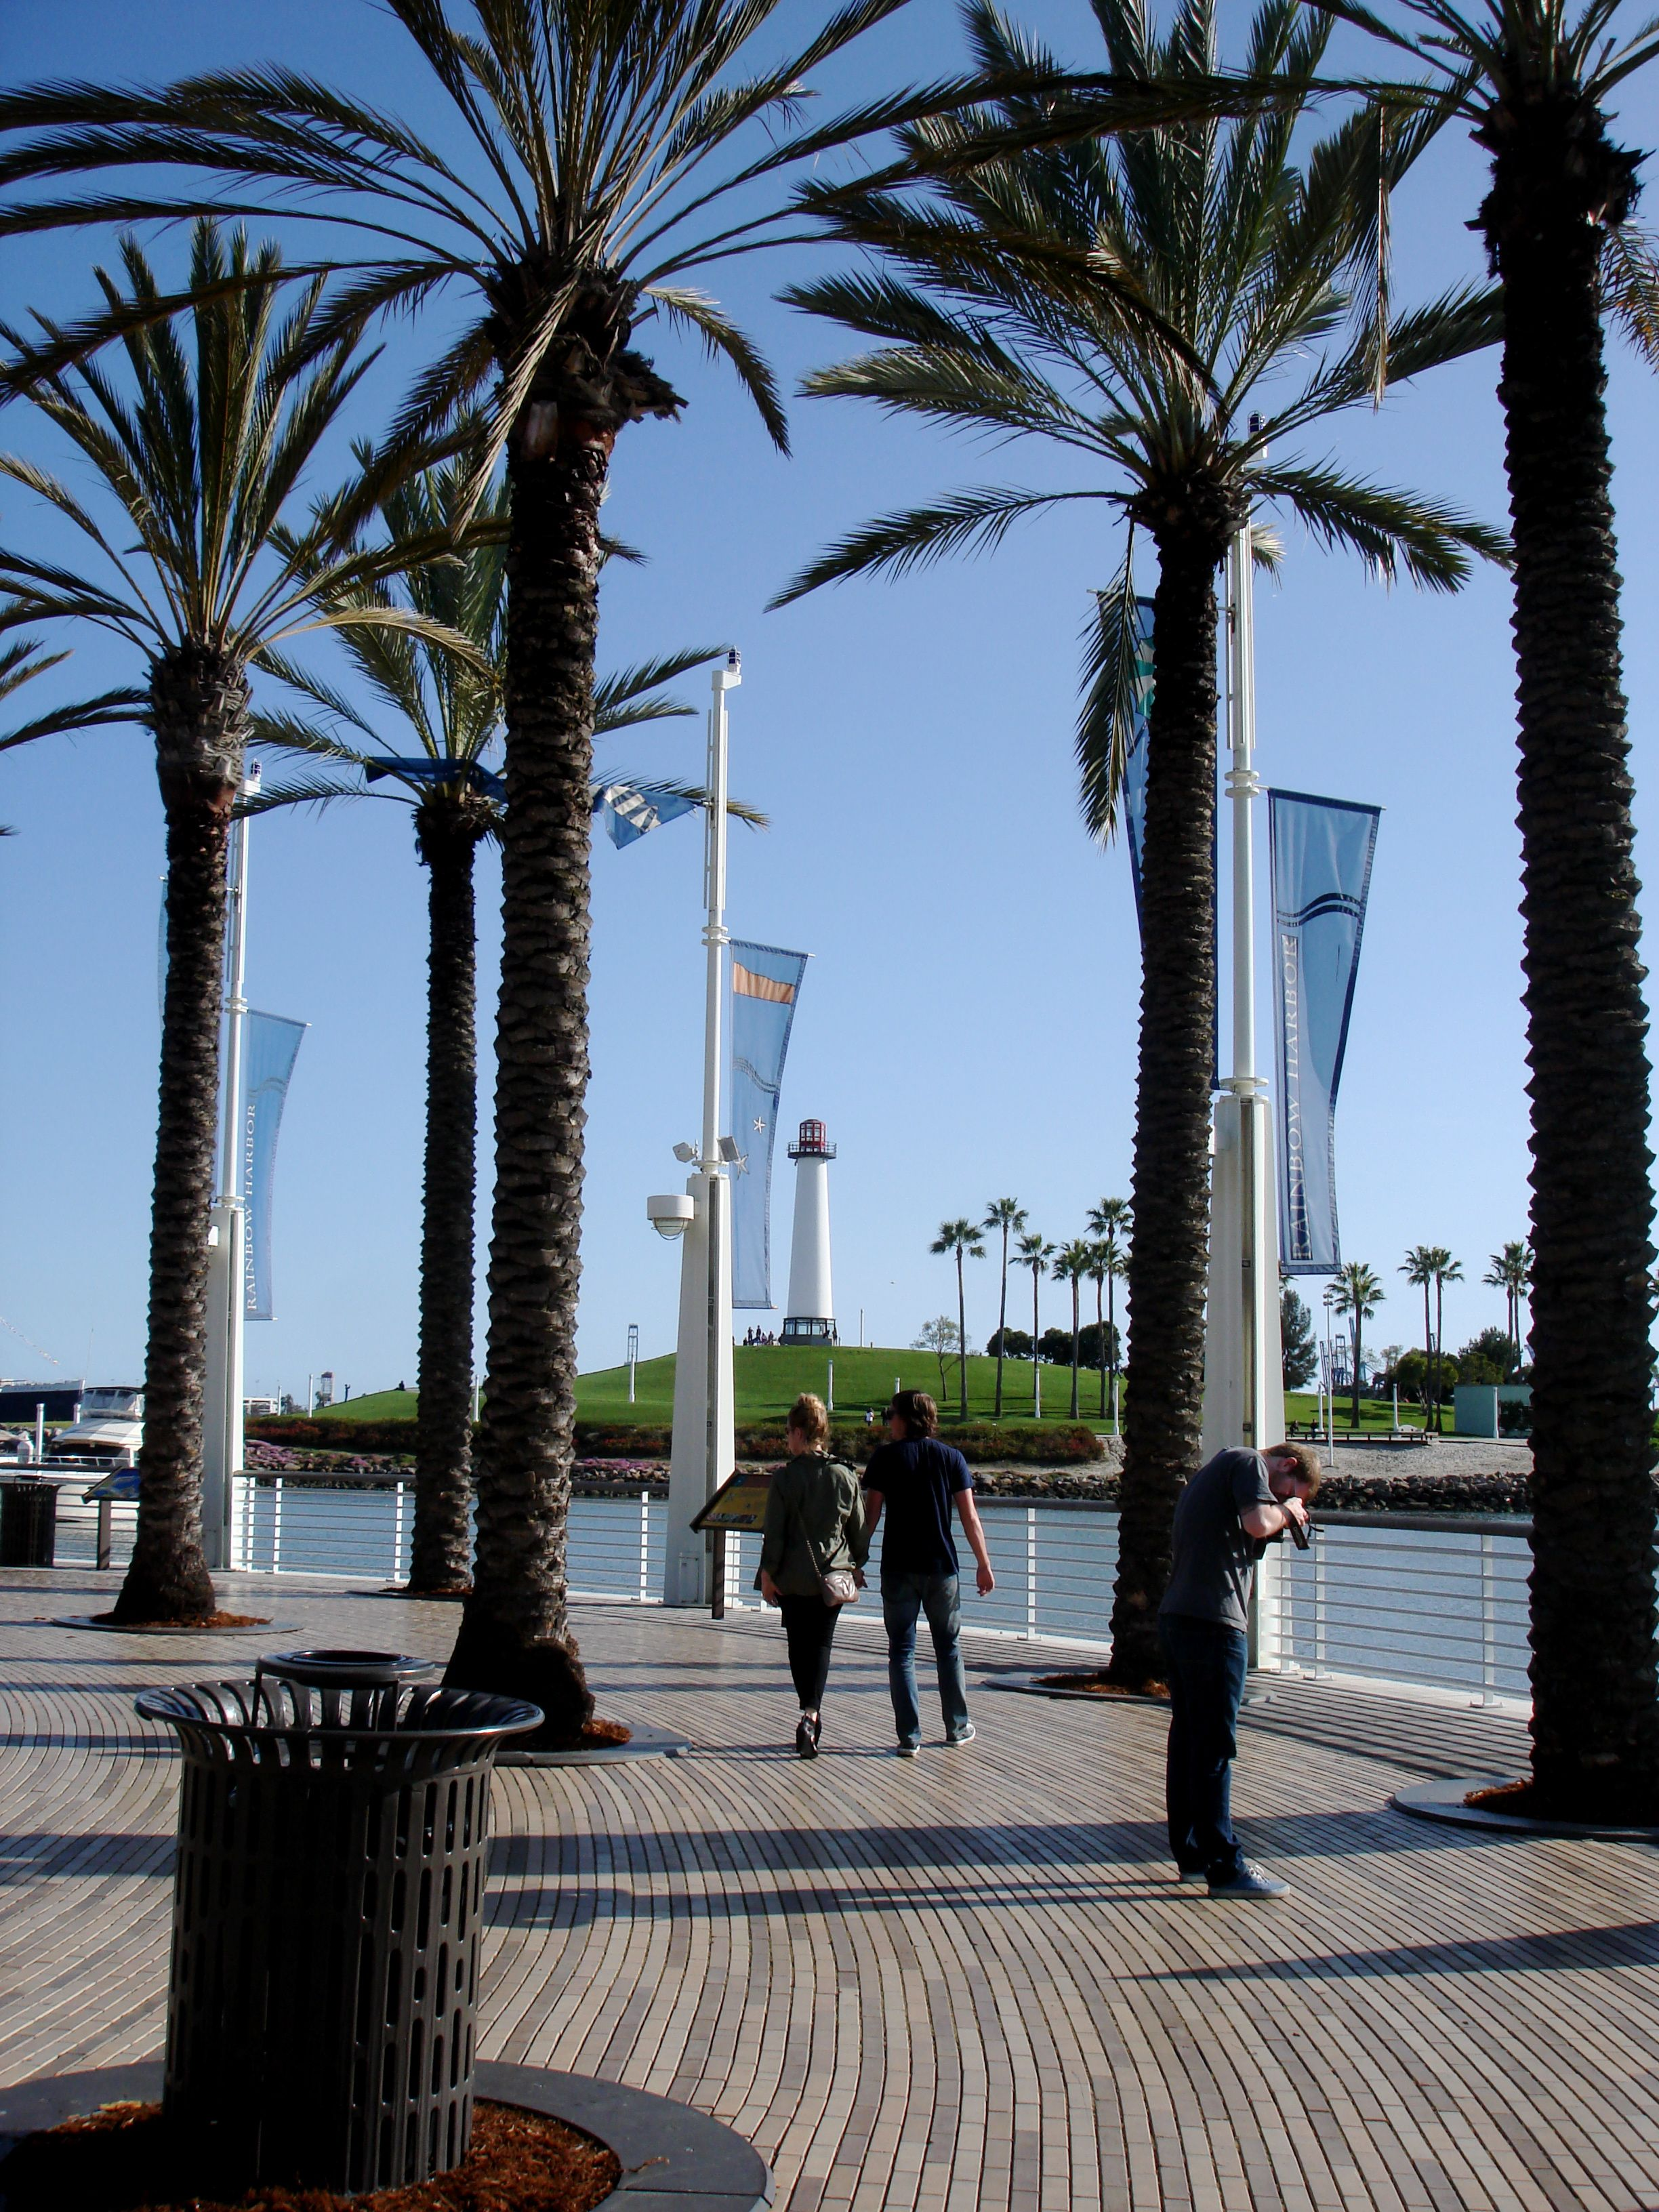 Long Beach Ca Doesn T This Shot Just Make You Want To Be There Long Beach California Travel Sights Destin Beach